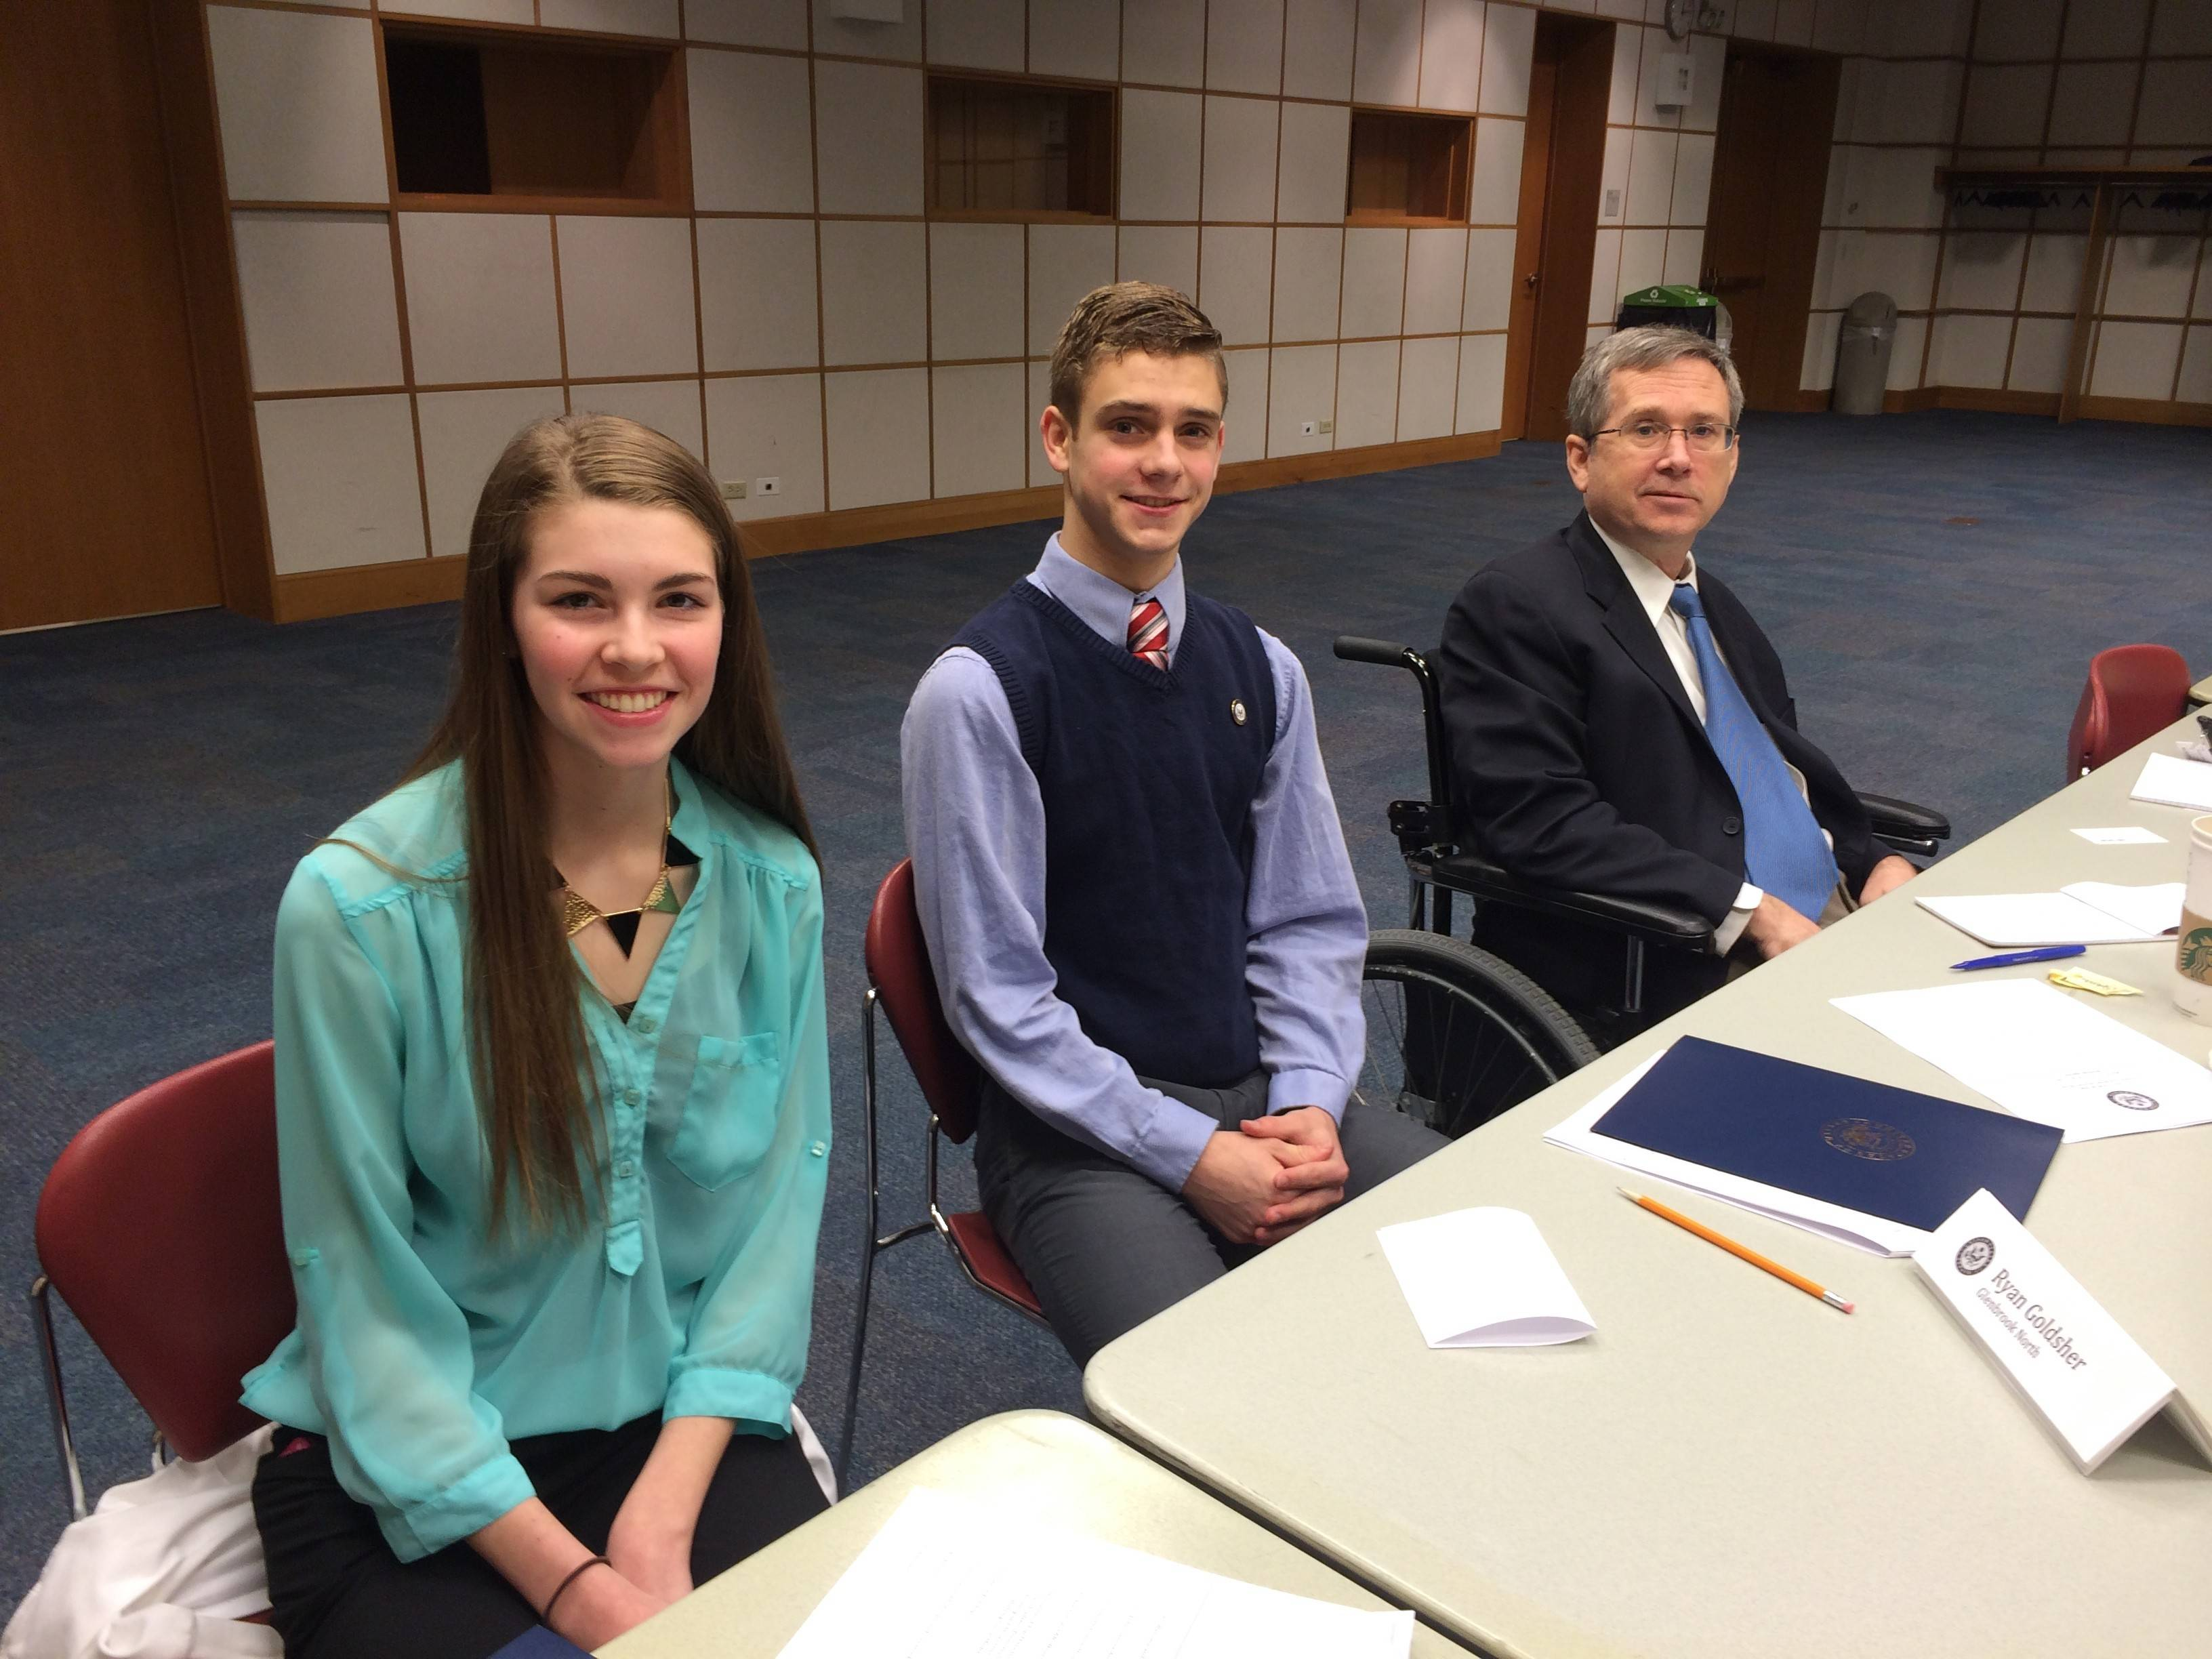 Sen. Mark Kirk, right, meets Saturday with Colleen Keefe of Mount Prospect and Wheeling High School, and Ryan Goldsher of Northbrook and Glenbard West High School, to discuss issues facing teens at the Arlington Heights Memorial Library.